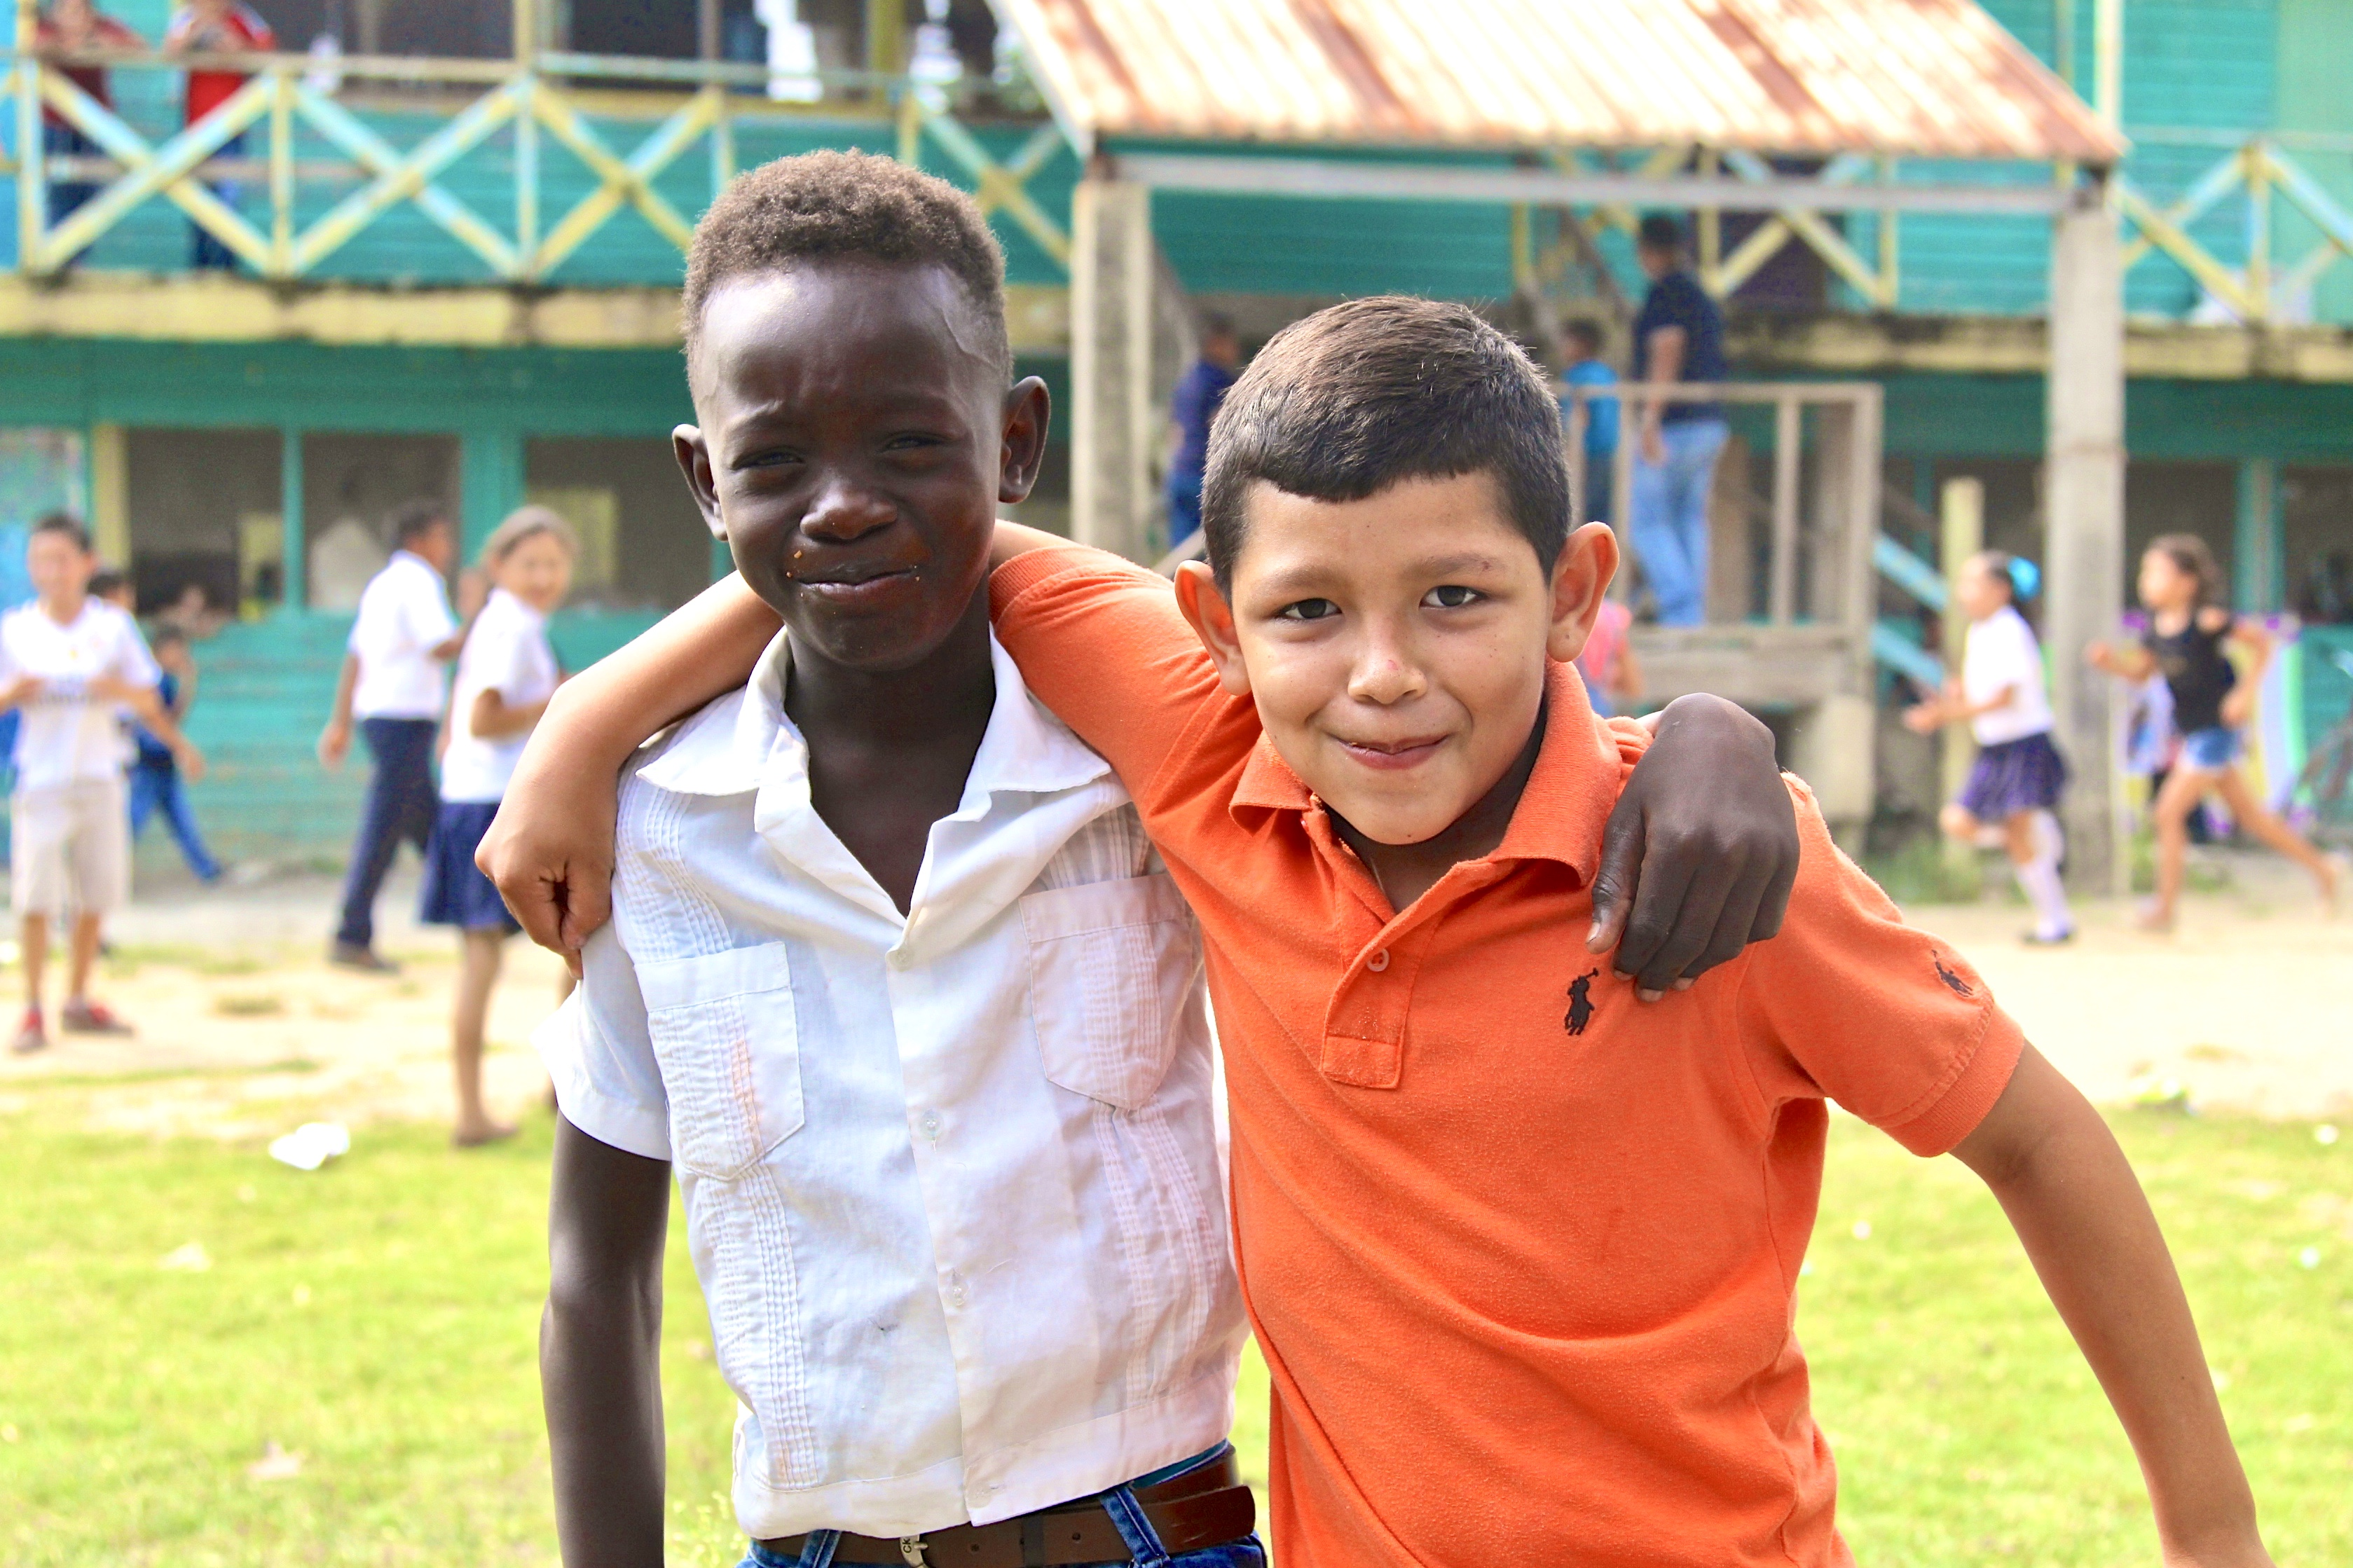 Updates of students at school 50 in honduras